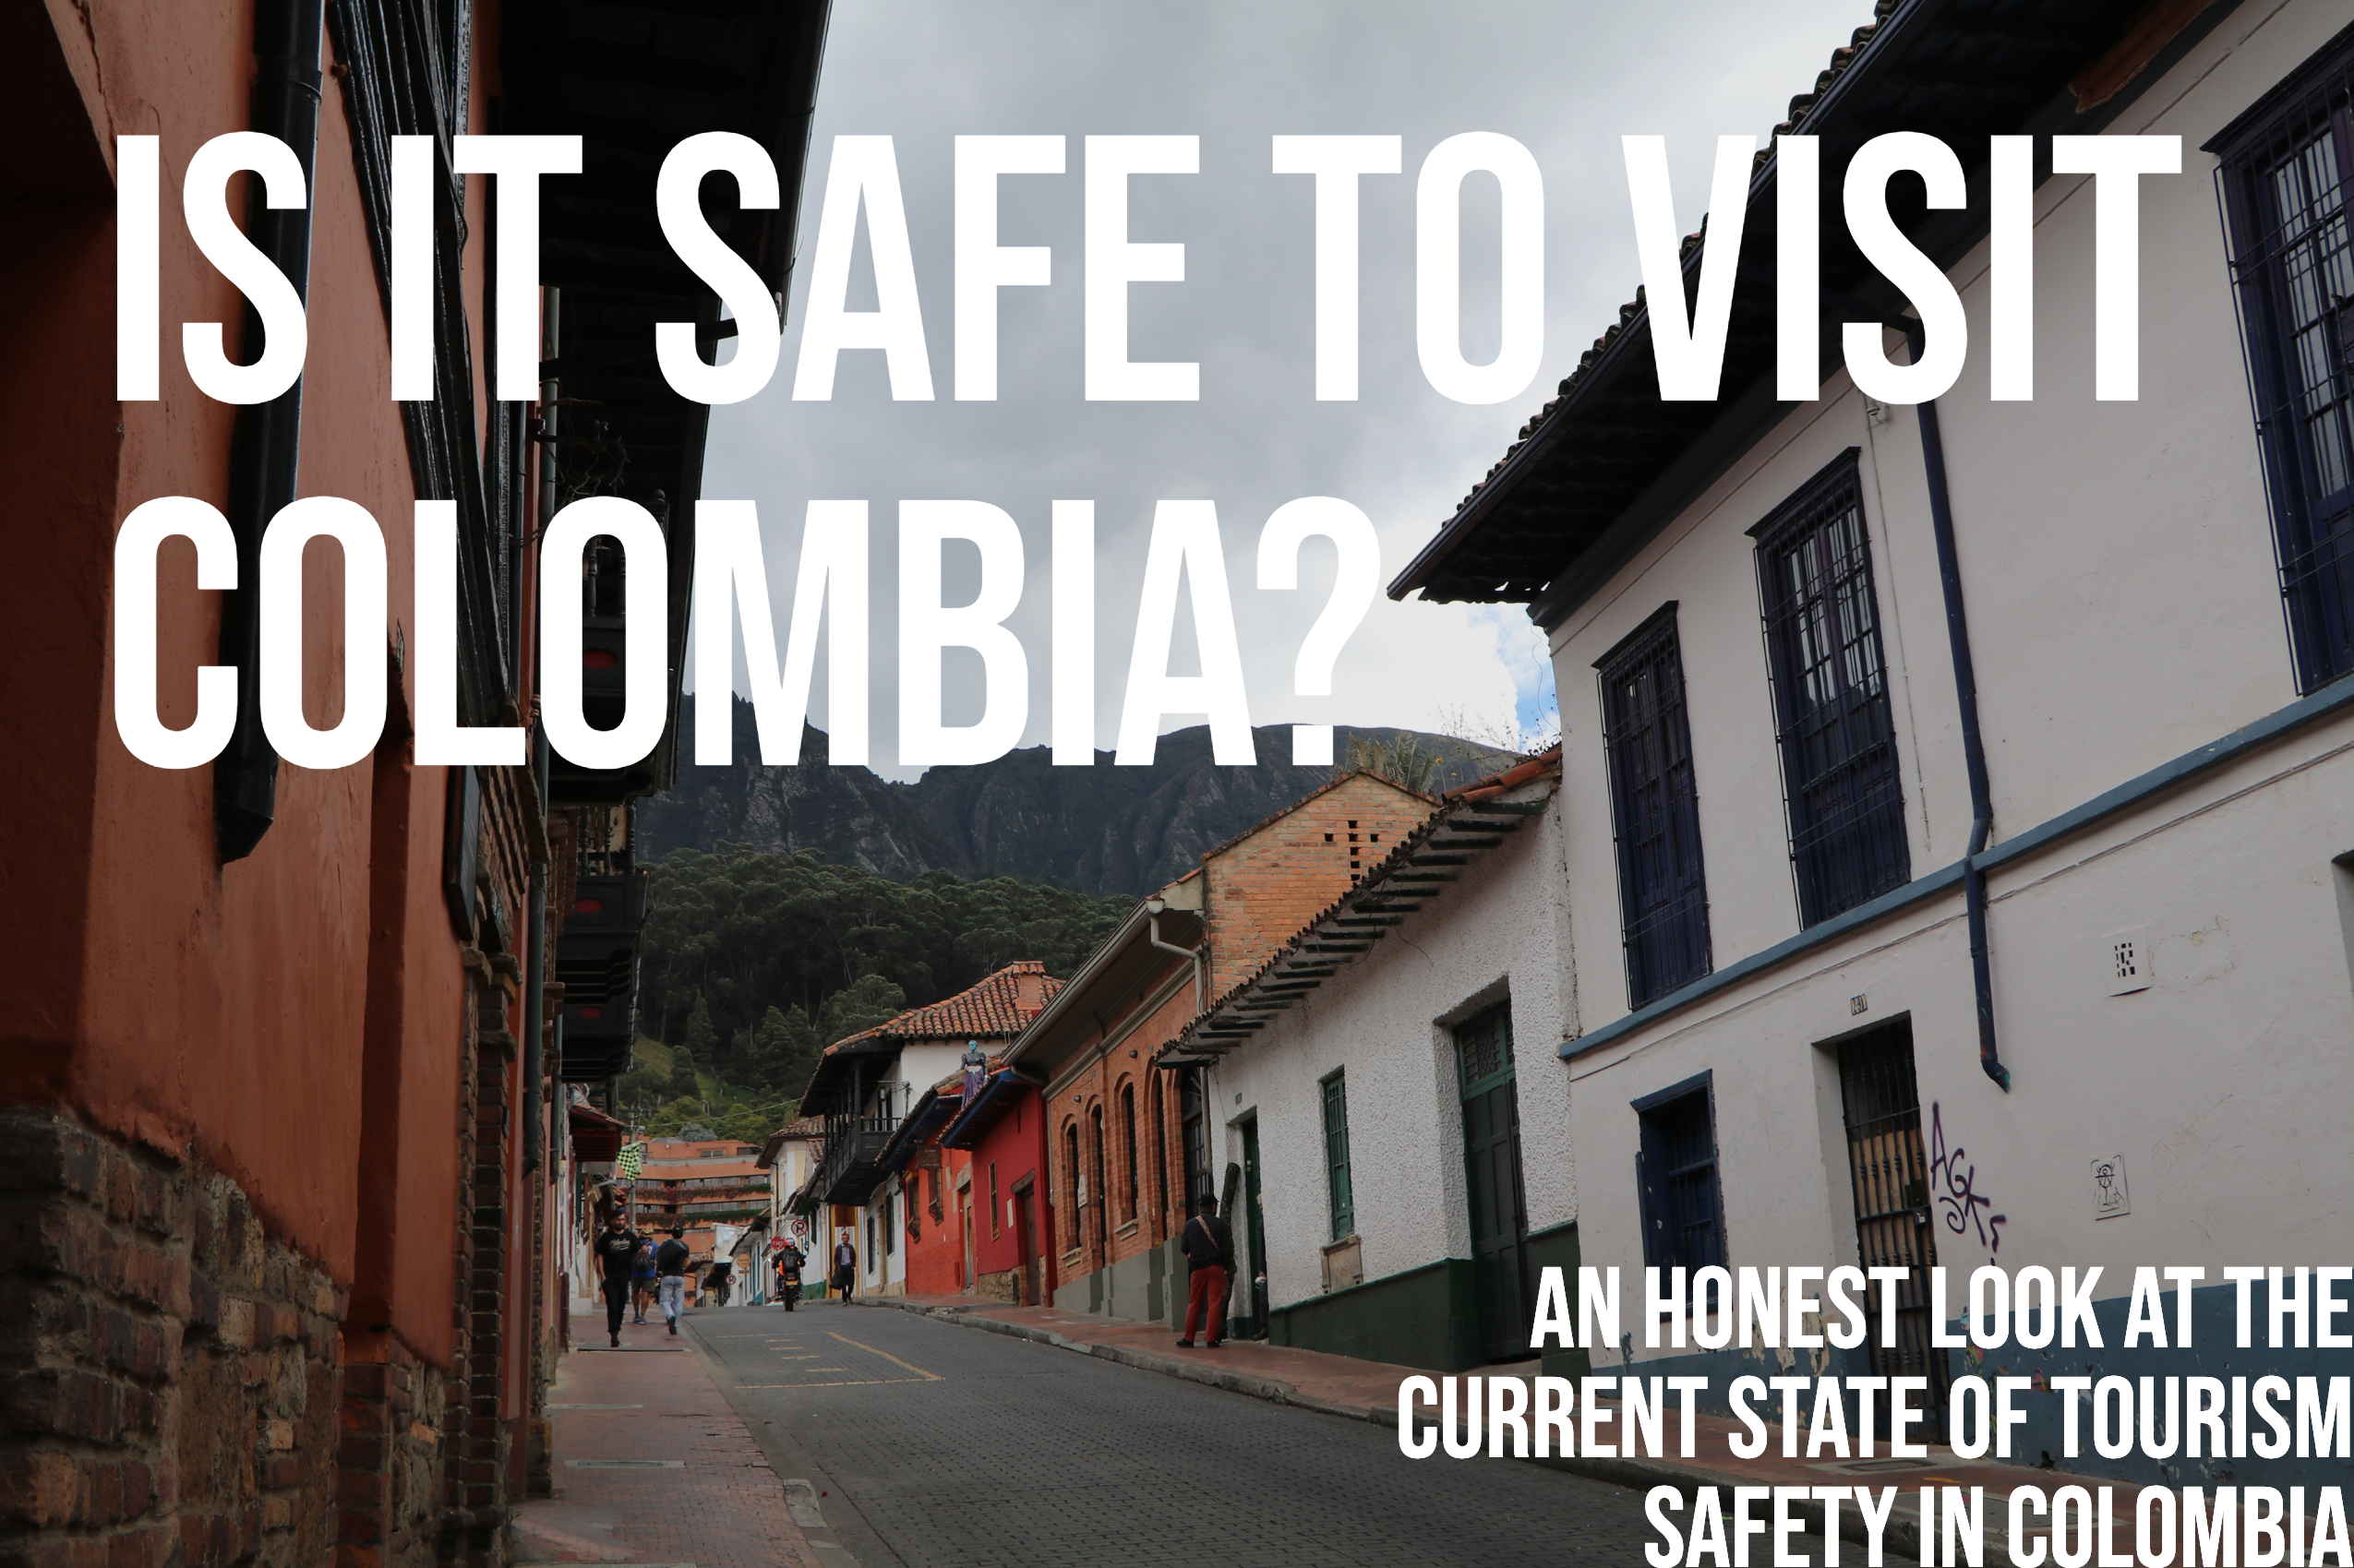 Is it safe to visit Colombia?